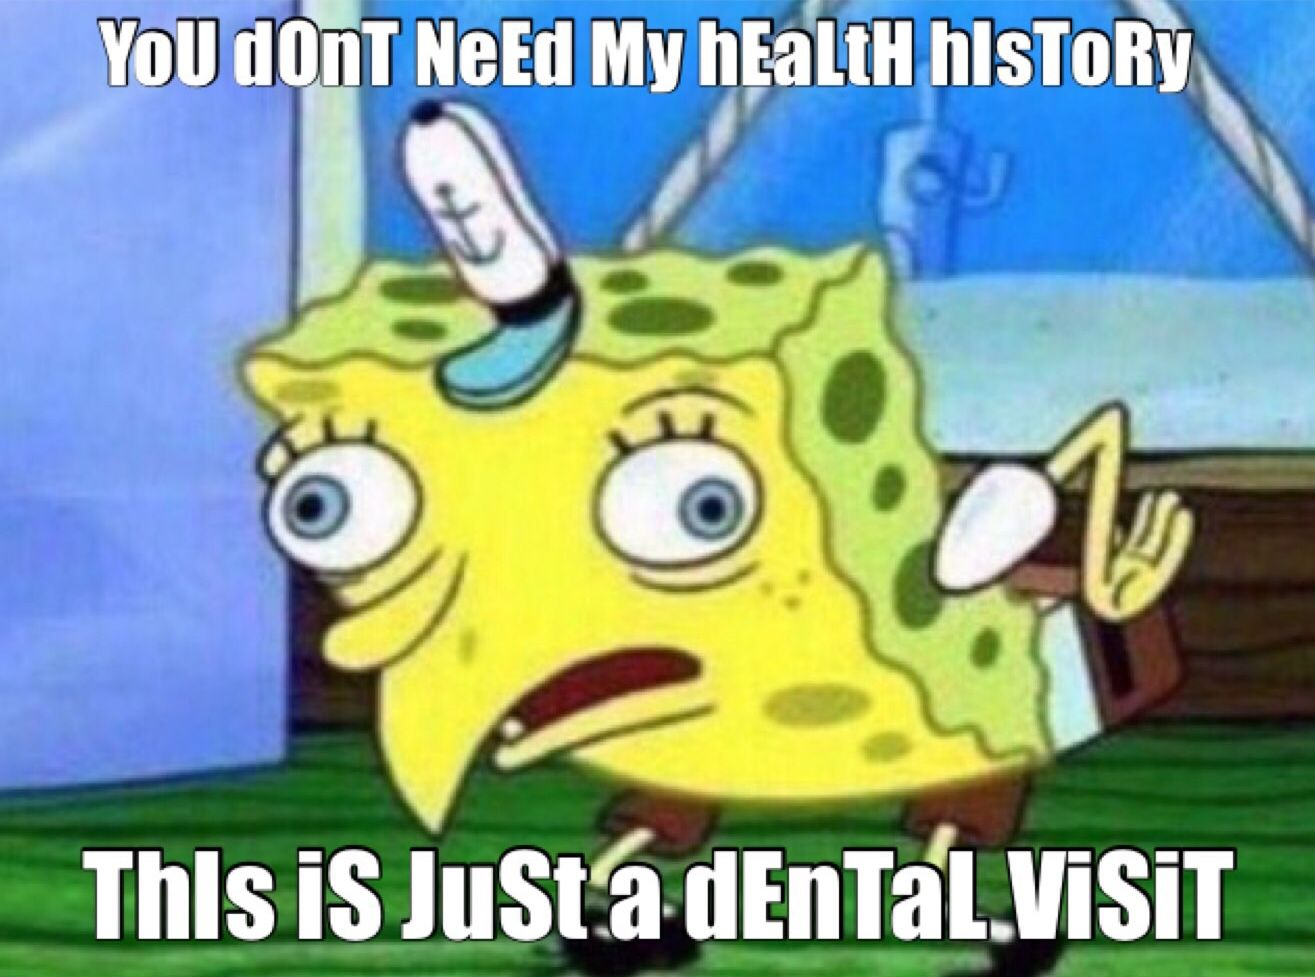 Spongebob meme dental spongebob your mouth is attached to your body systemic health oral hygiene dental hygiene dental hygienist dental assistant